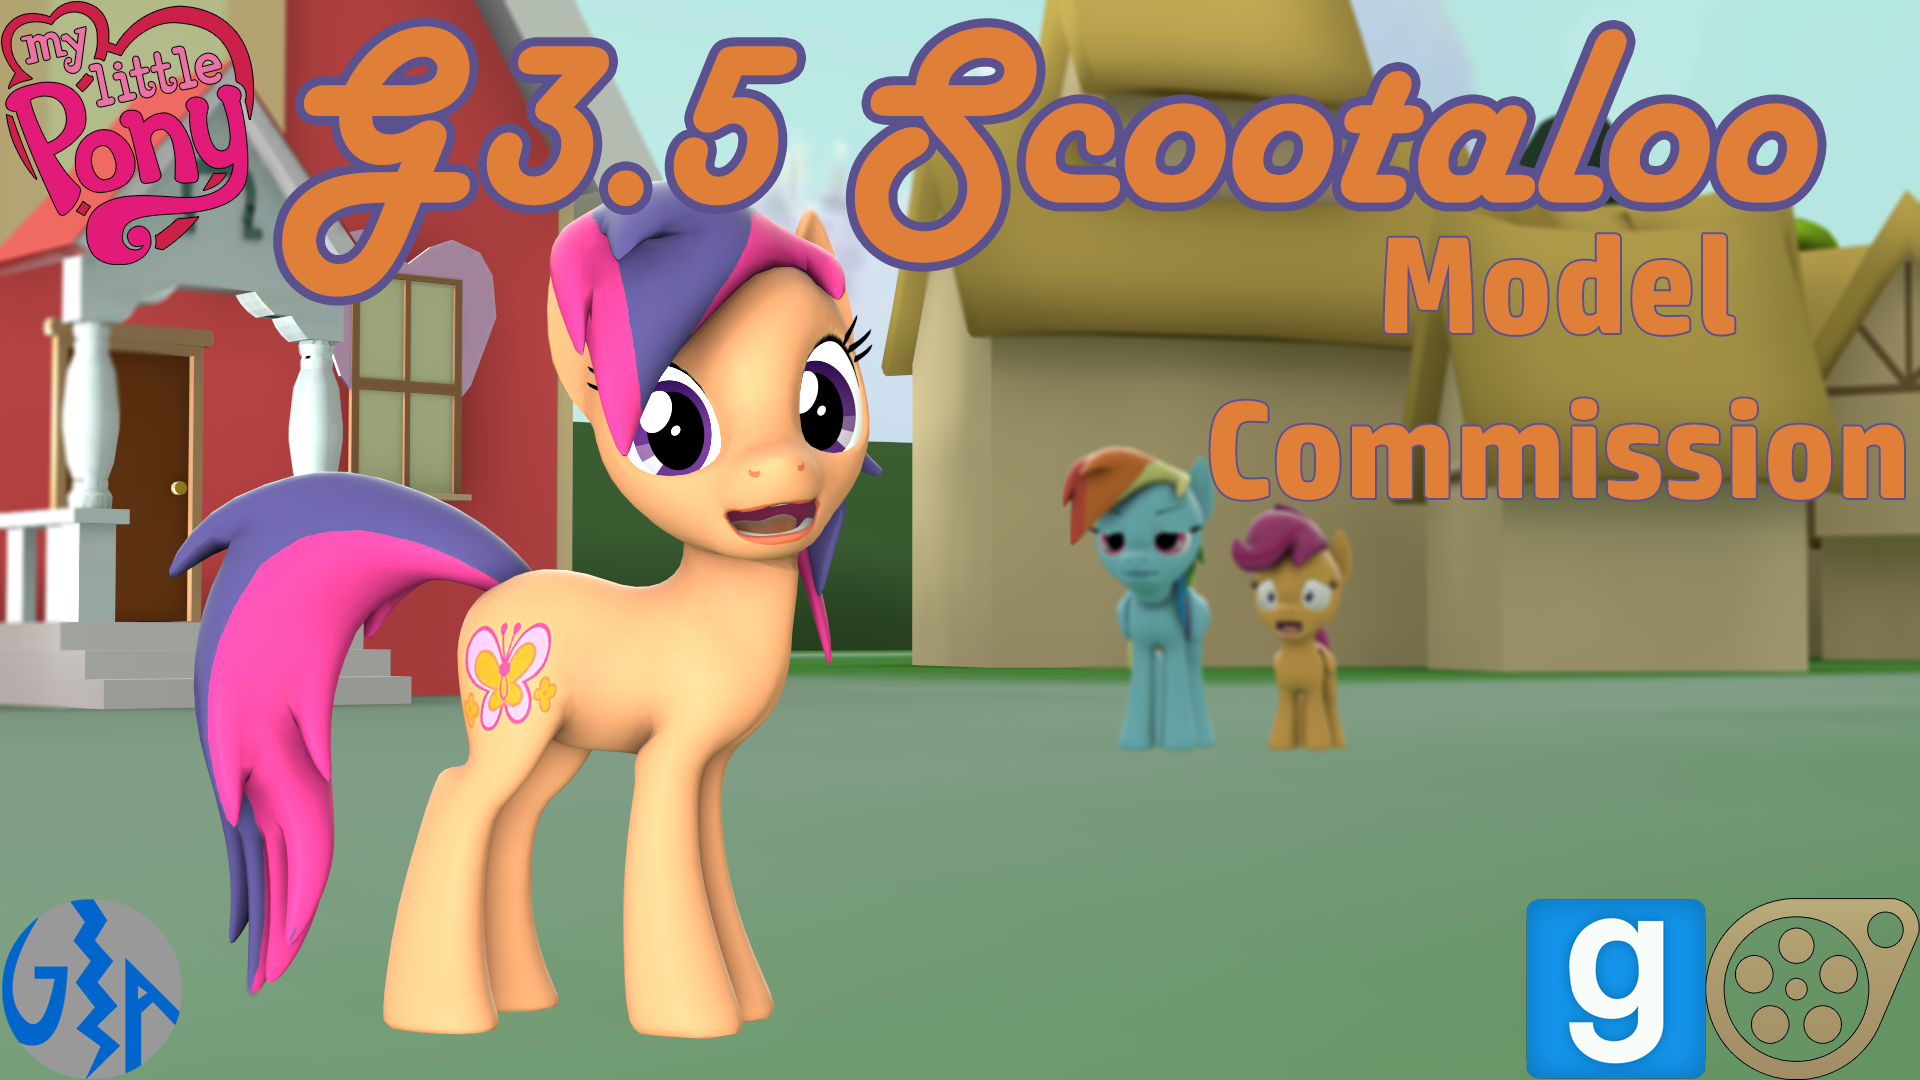 Scootaloo Mlp G3 5 Sfm Gmod Dl Commission By Gameact3 On Deviantart See more of scootaloo (mlp: scootaloo mlp g3 5 sfm gmod dl